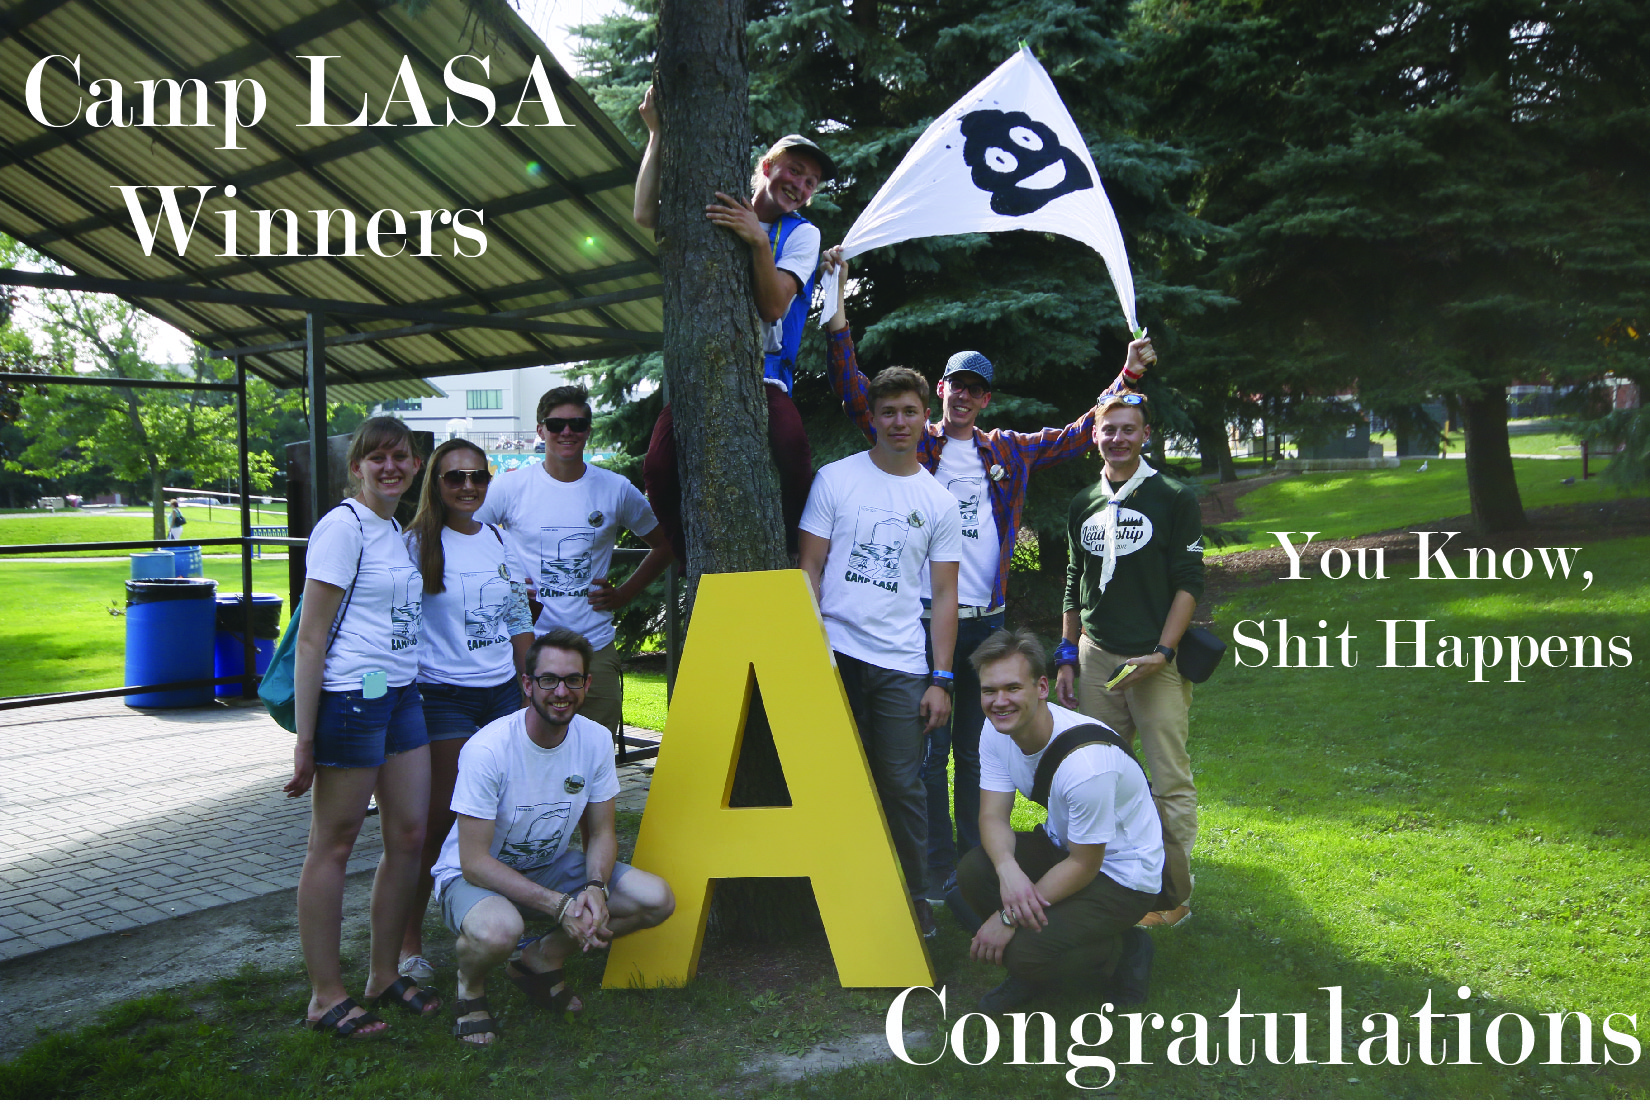 Camp Lasa - Winners